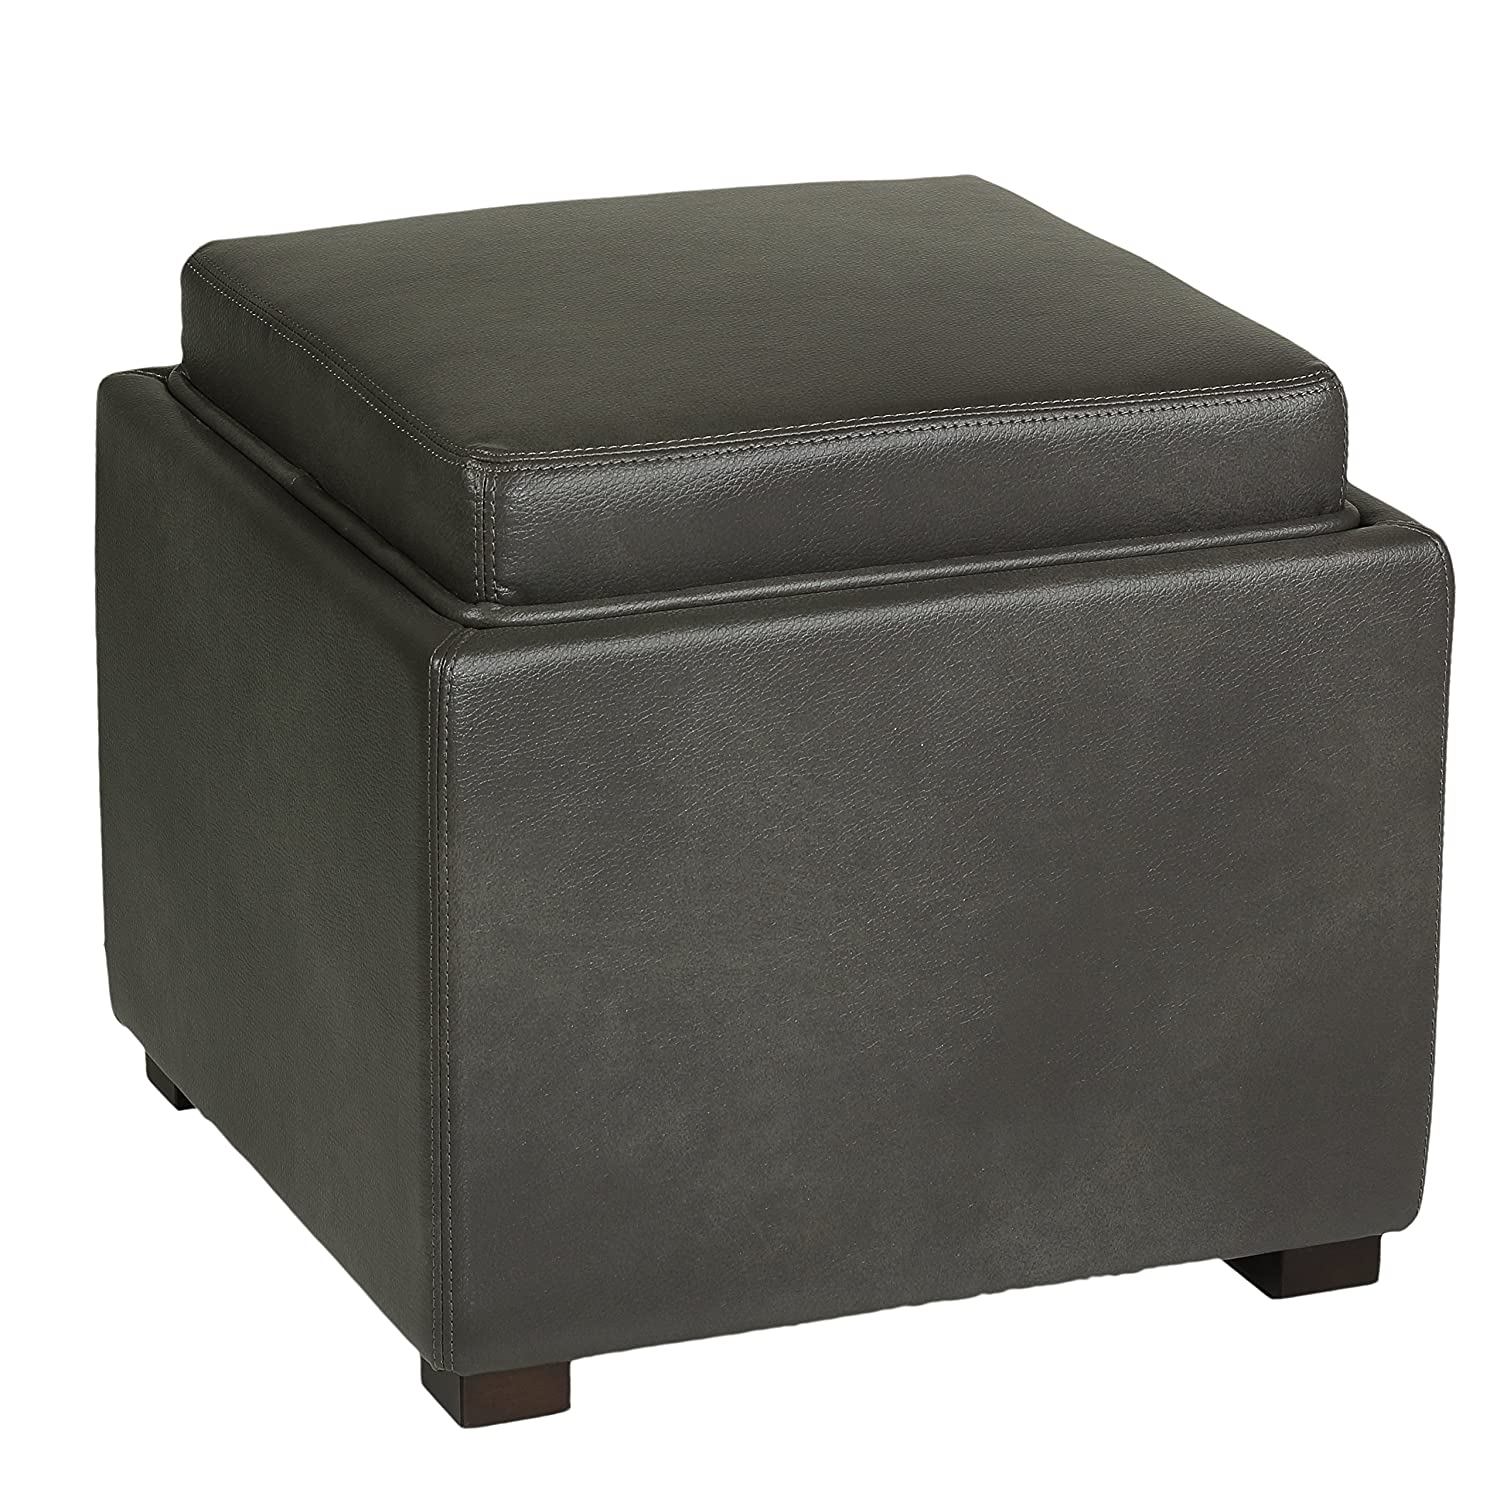 Amazoncom Cortesi Home Mavi Grey Top Tray Storage Cube Ottoman